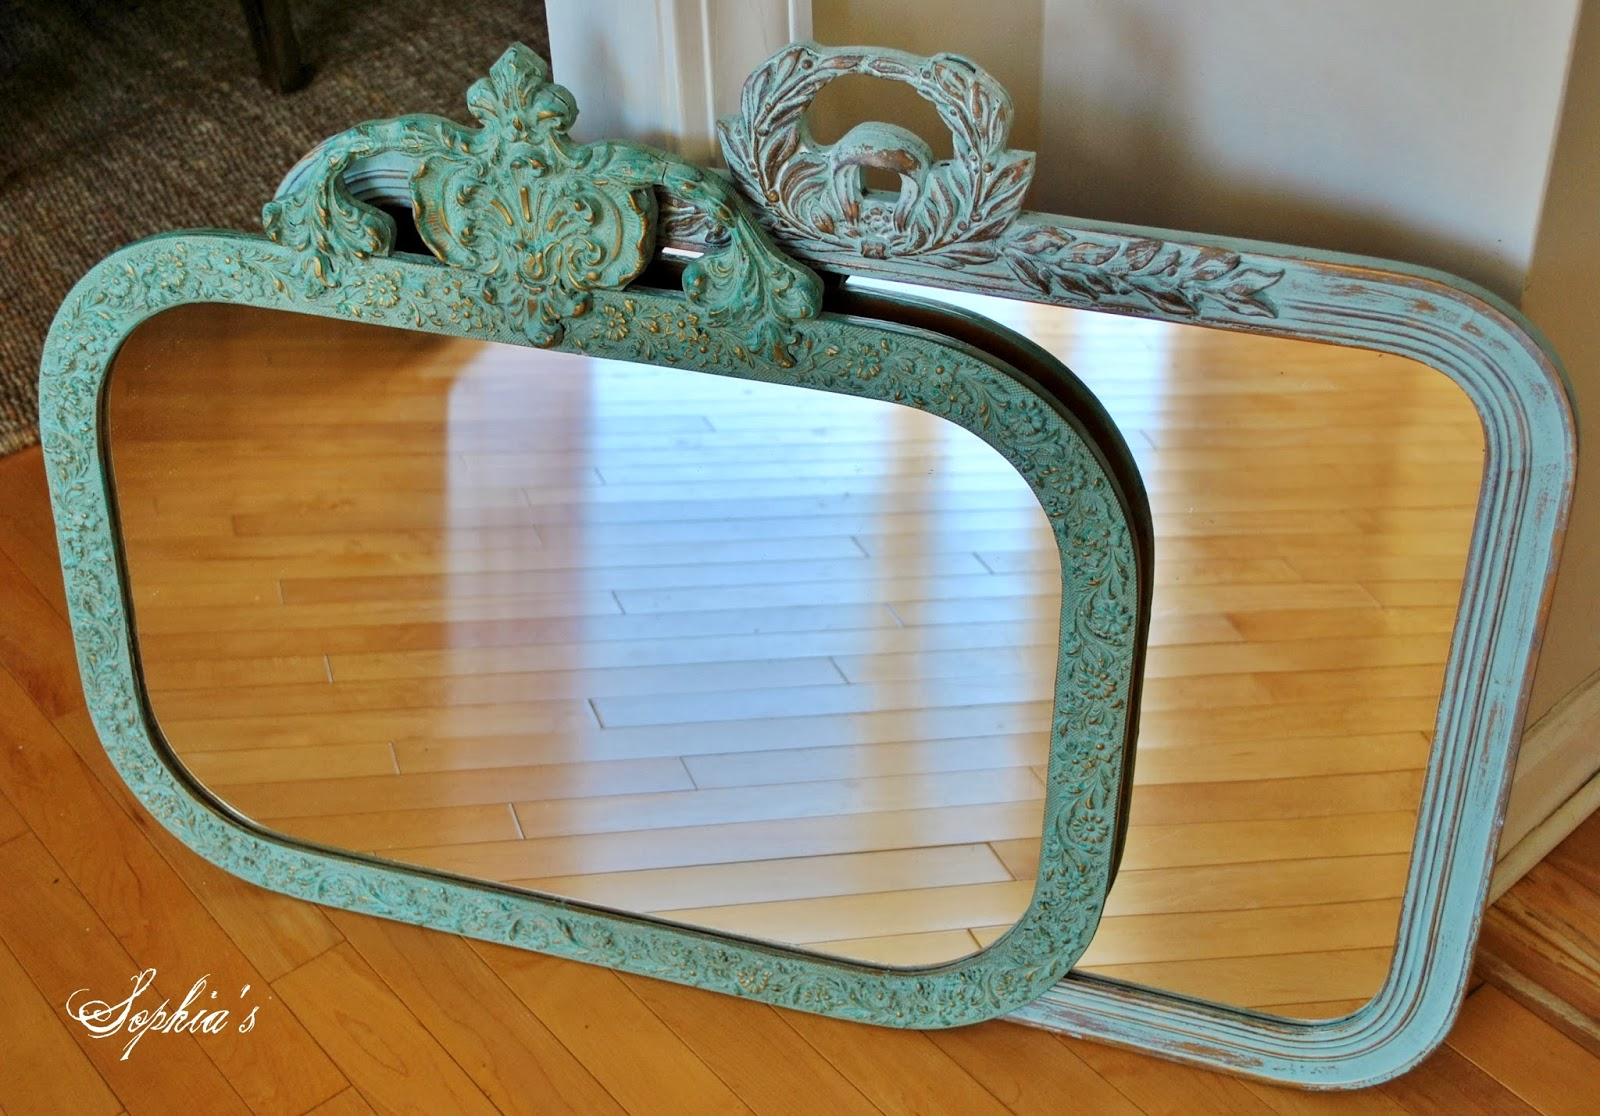 Sophia\'s: Updating Mirrors with Chalk Paint